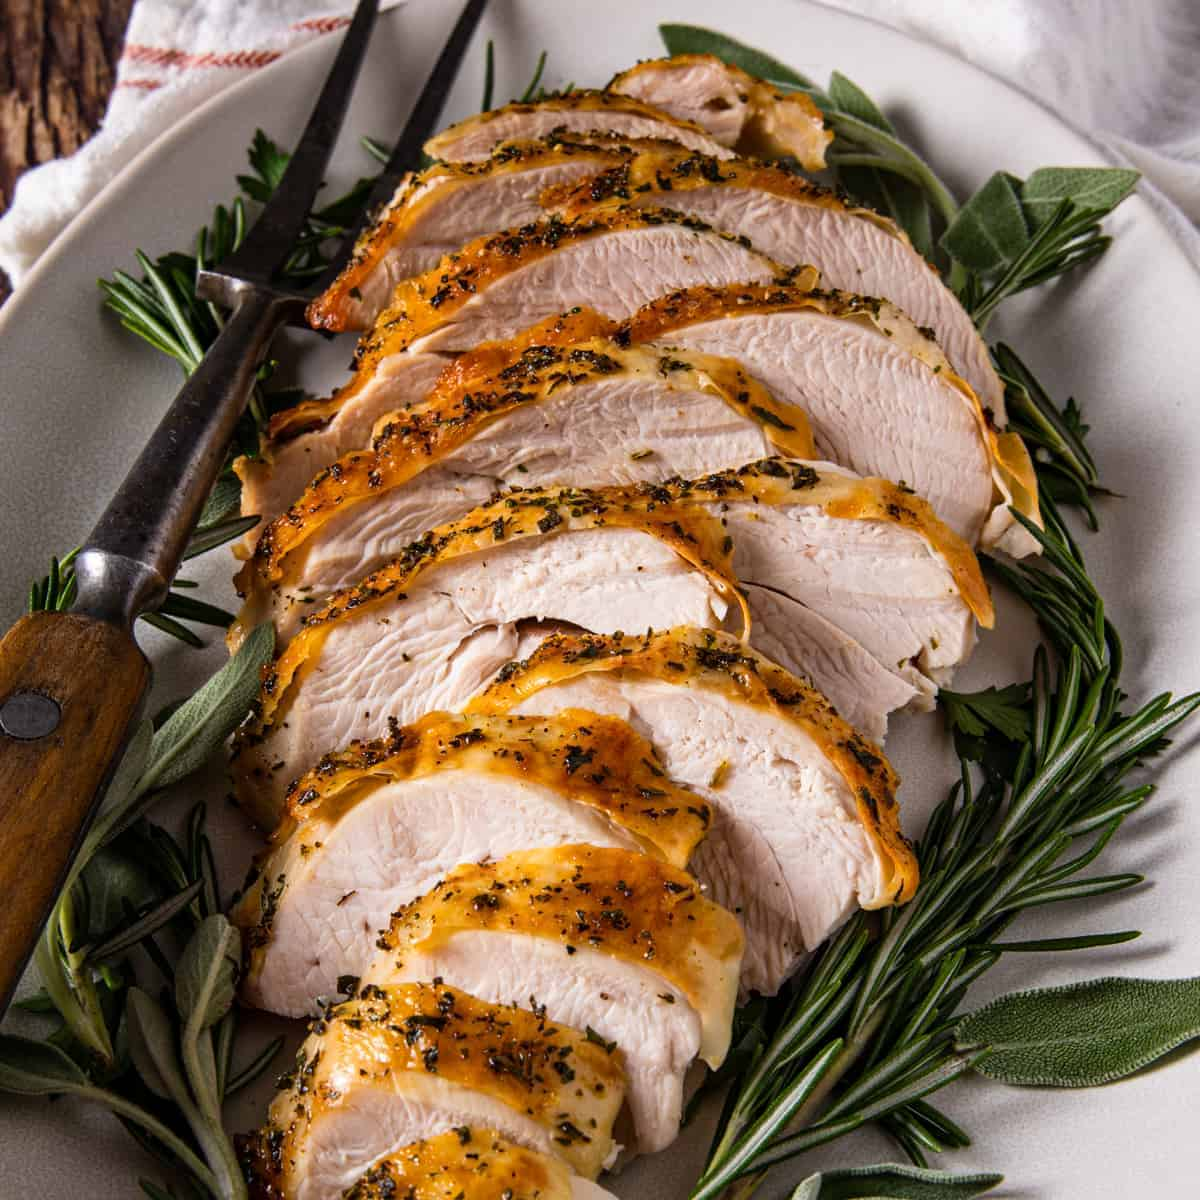 Close up view of the sliced herb roasted turkey on a serving platter surrounded by fresh herbs for garnish.